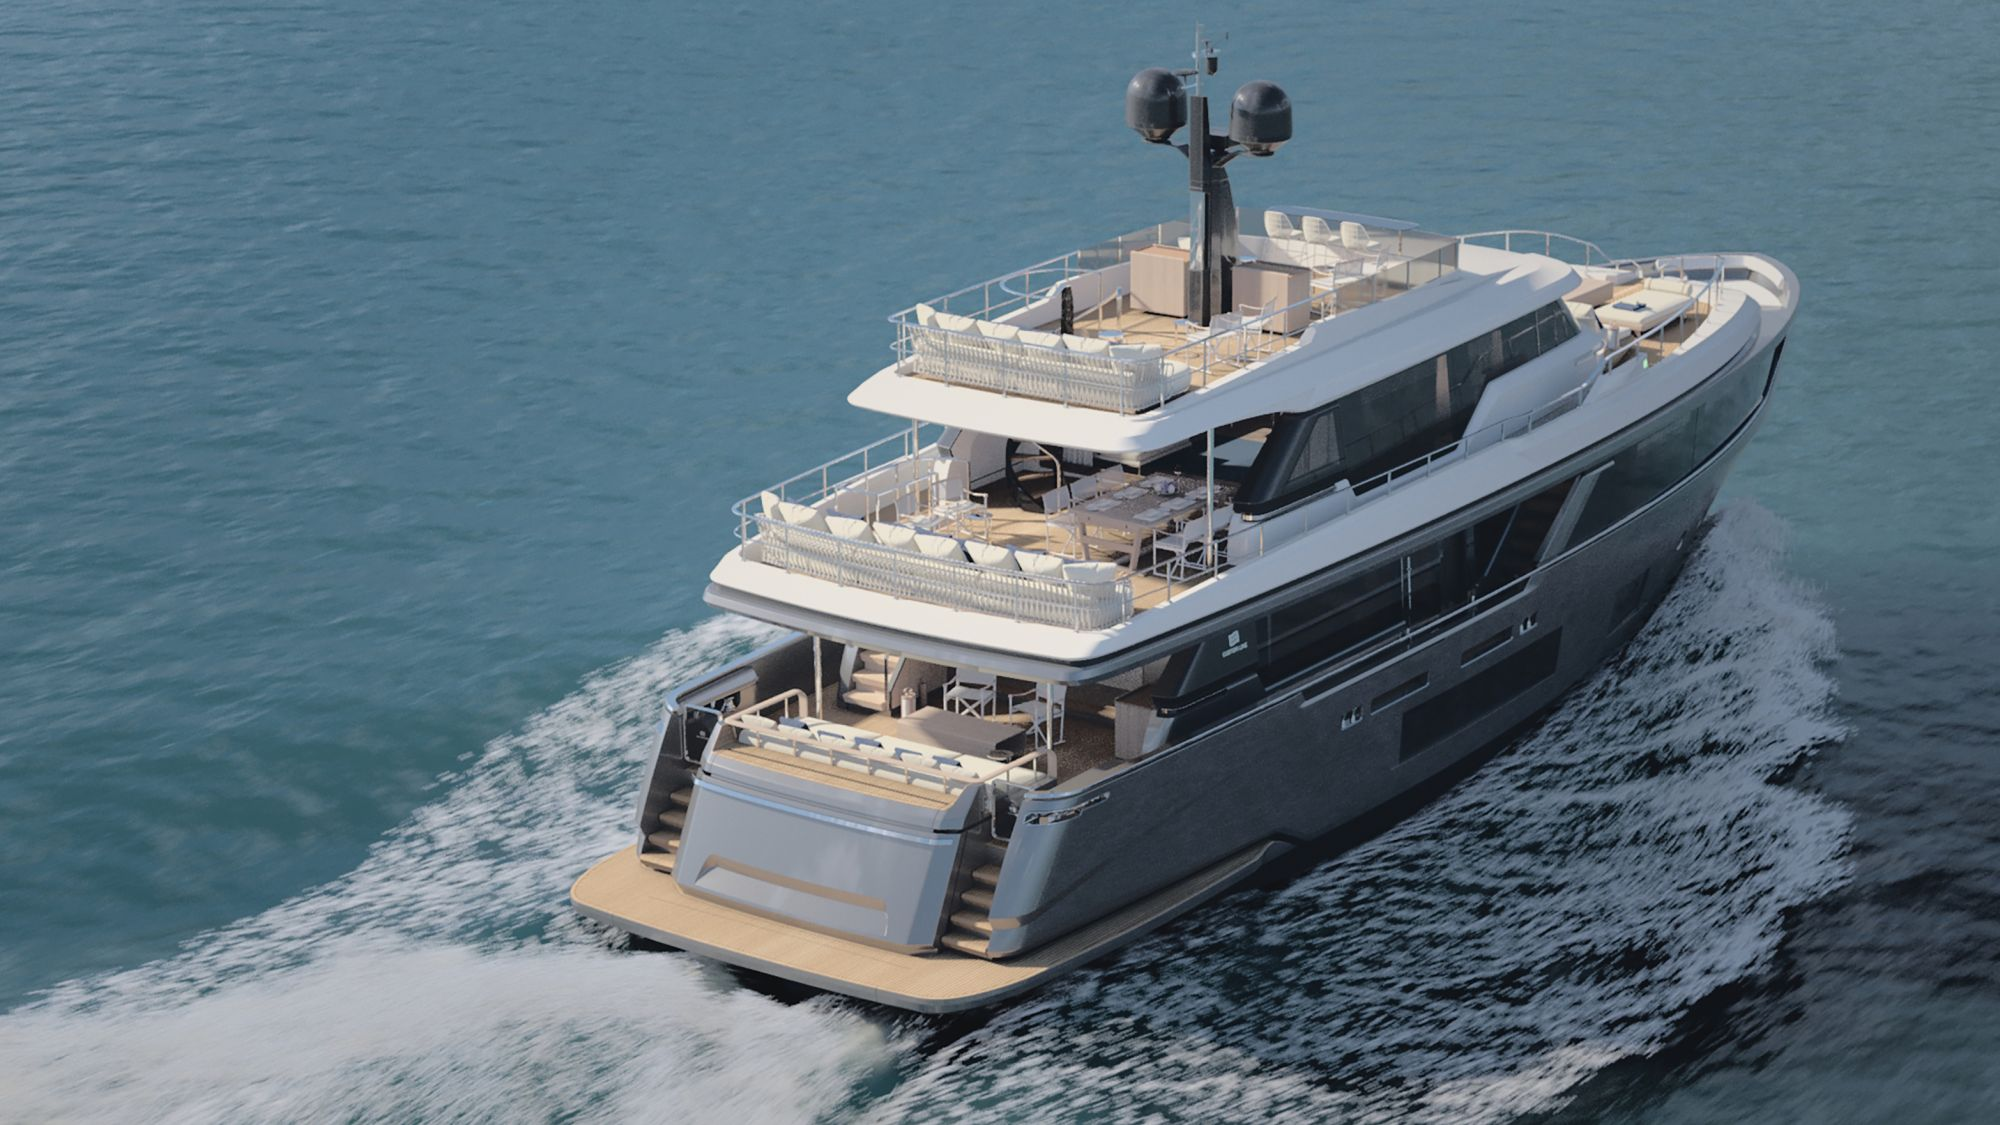 5 Things To Know About The New Custom Line Navetta 30 By Italian Shipbuilder Ferretti Group